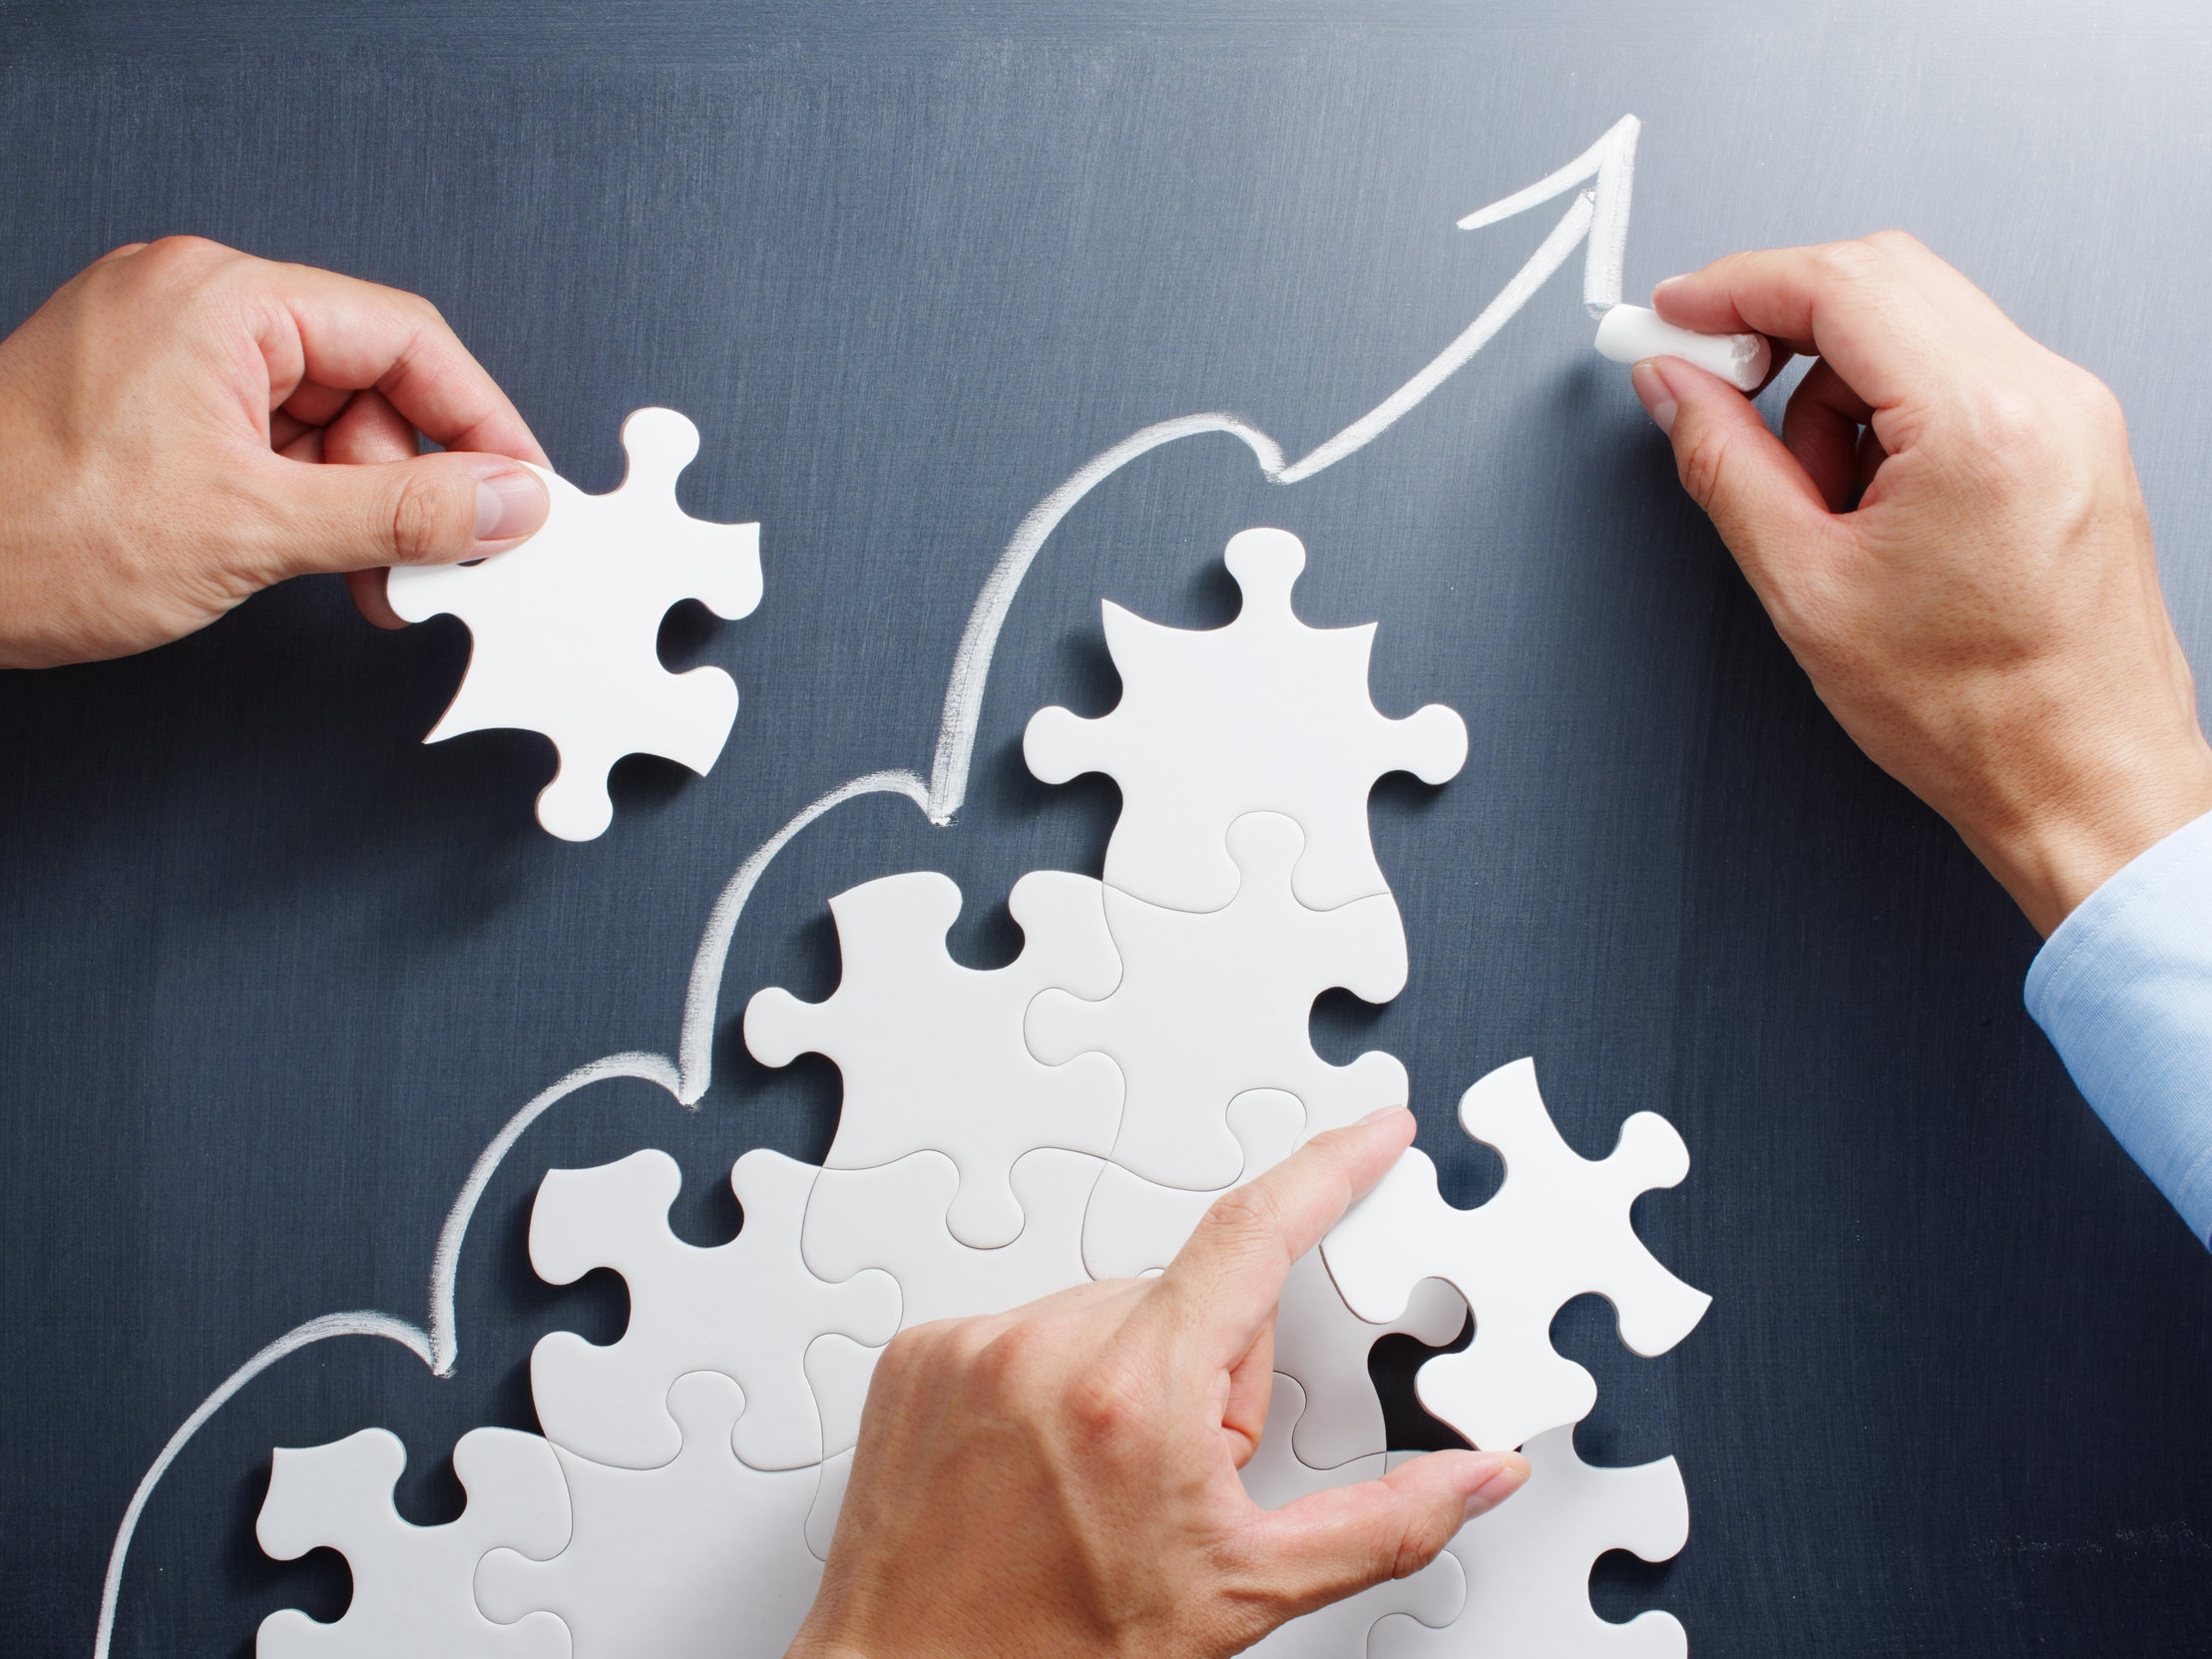 GROWTH STRATEGIES - Know where you want to grow, and build the right teams to get there.